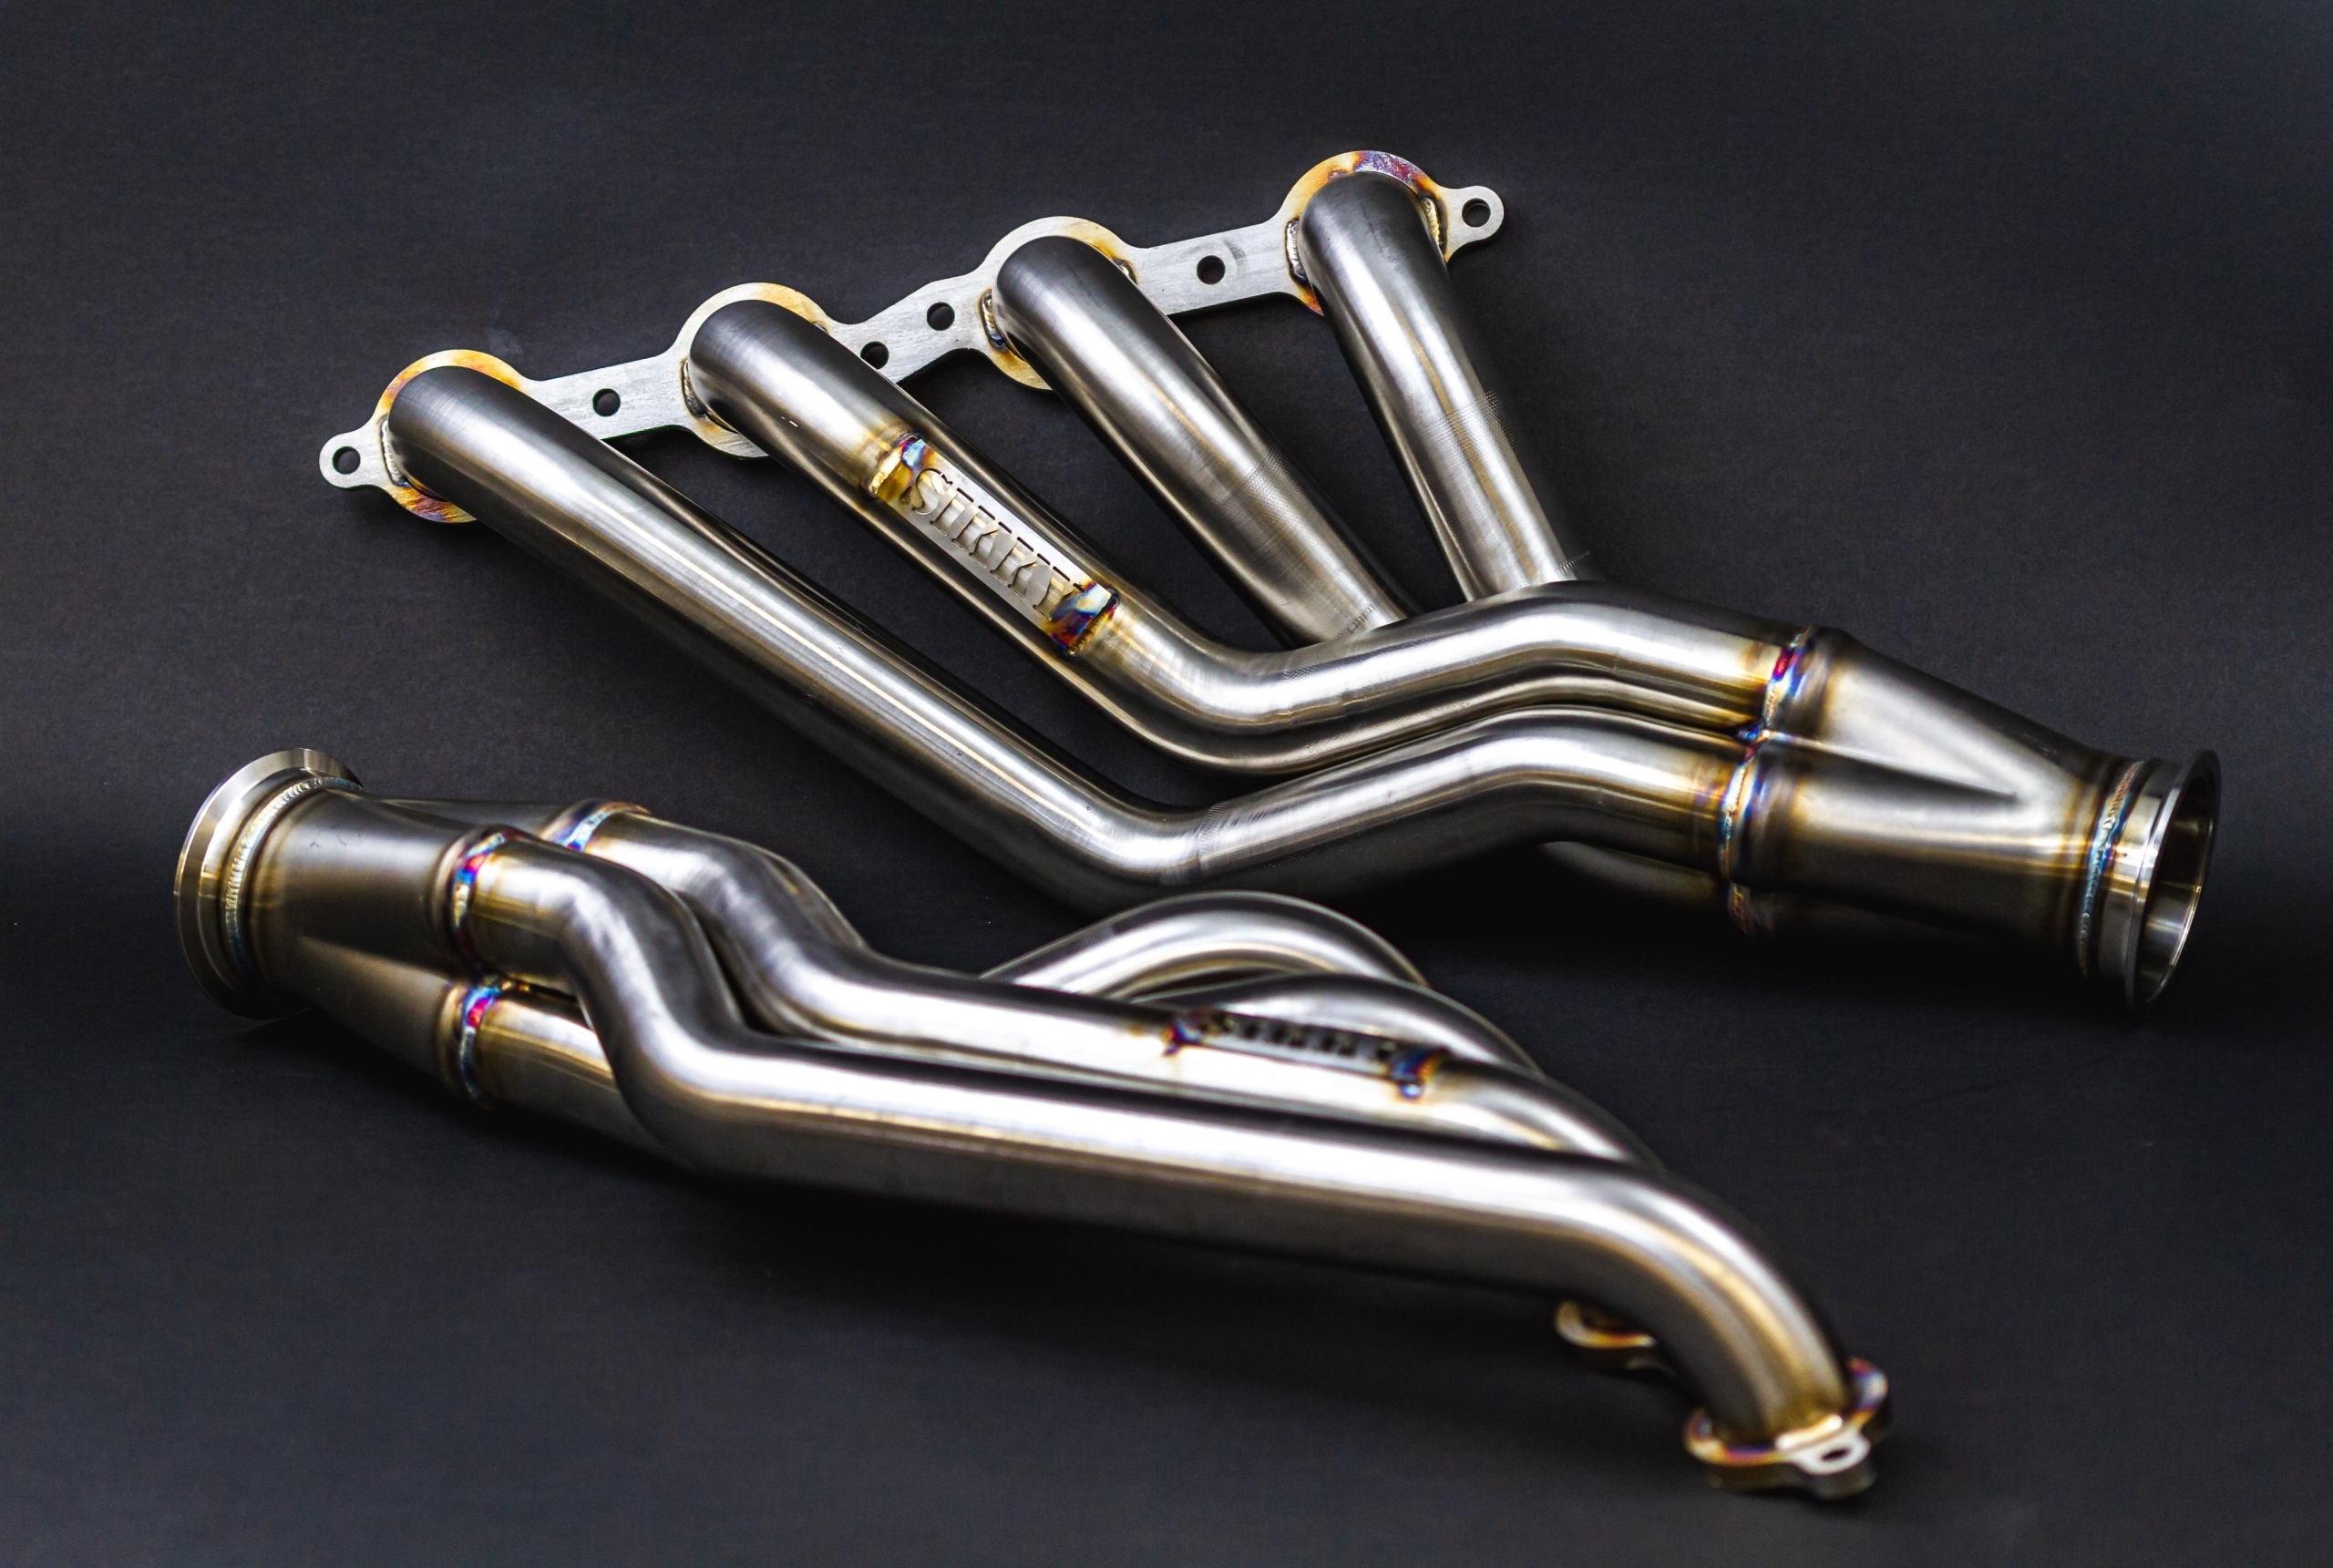 Sikky Nissan 370Z LS Swap Headers - Stainless Steel Pro Series